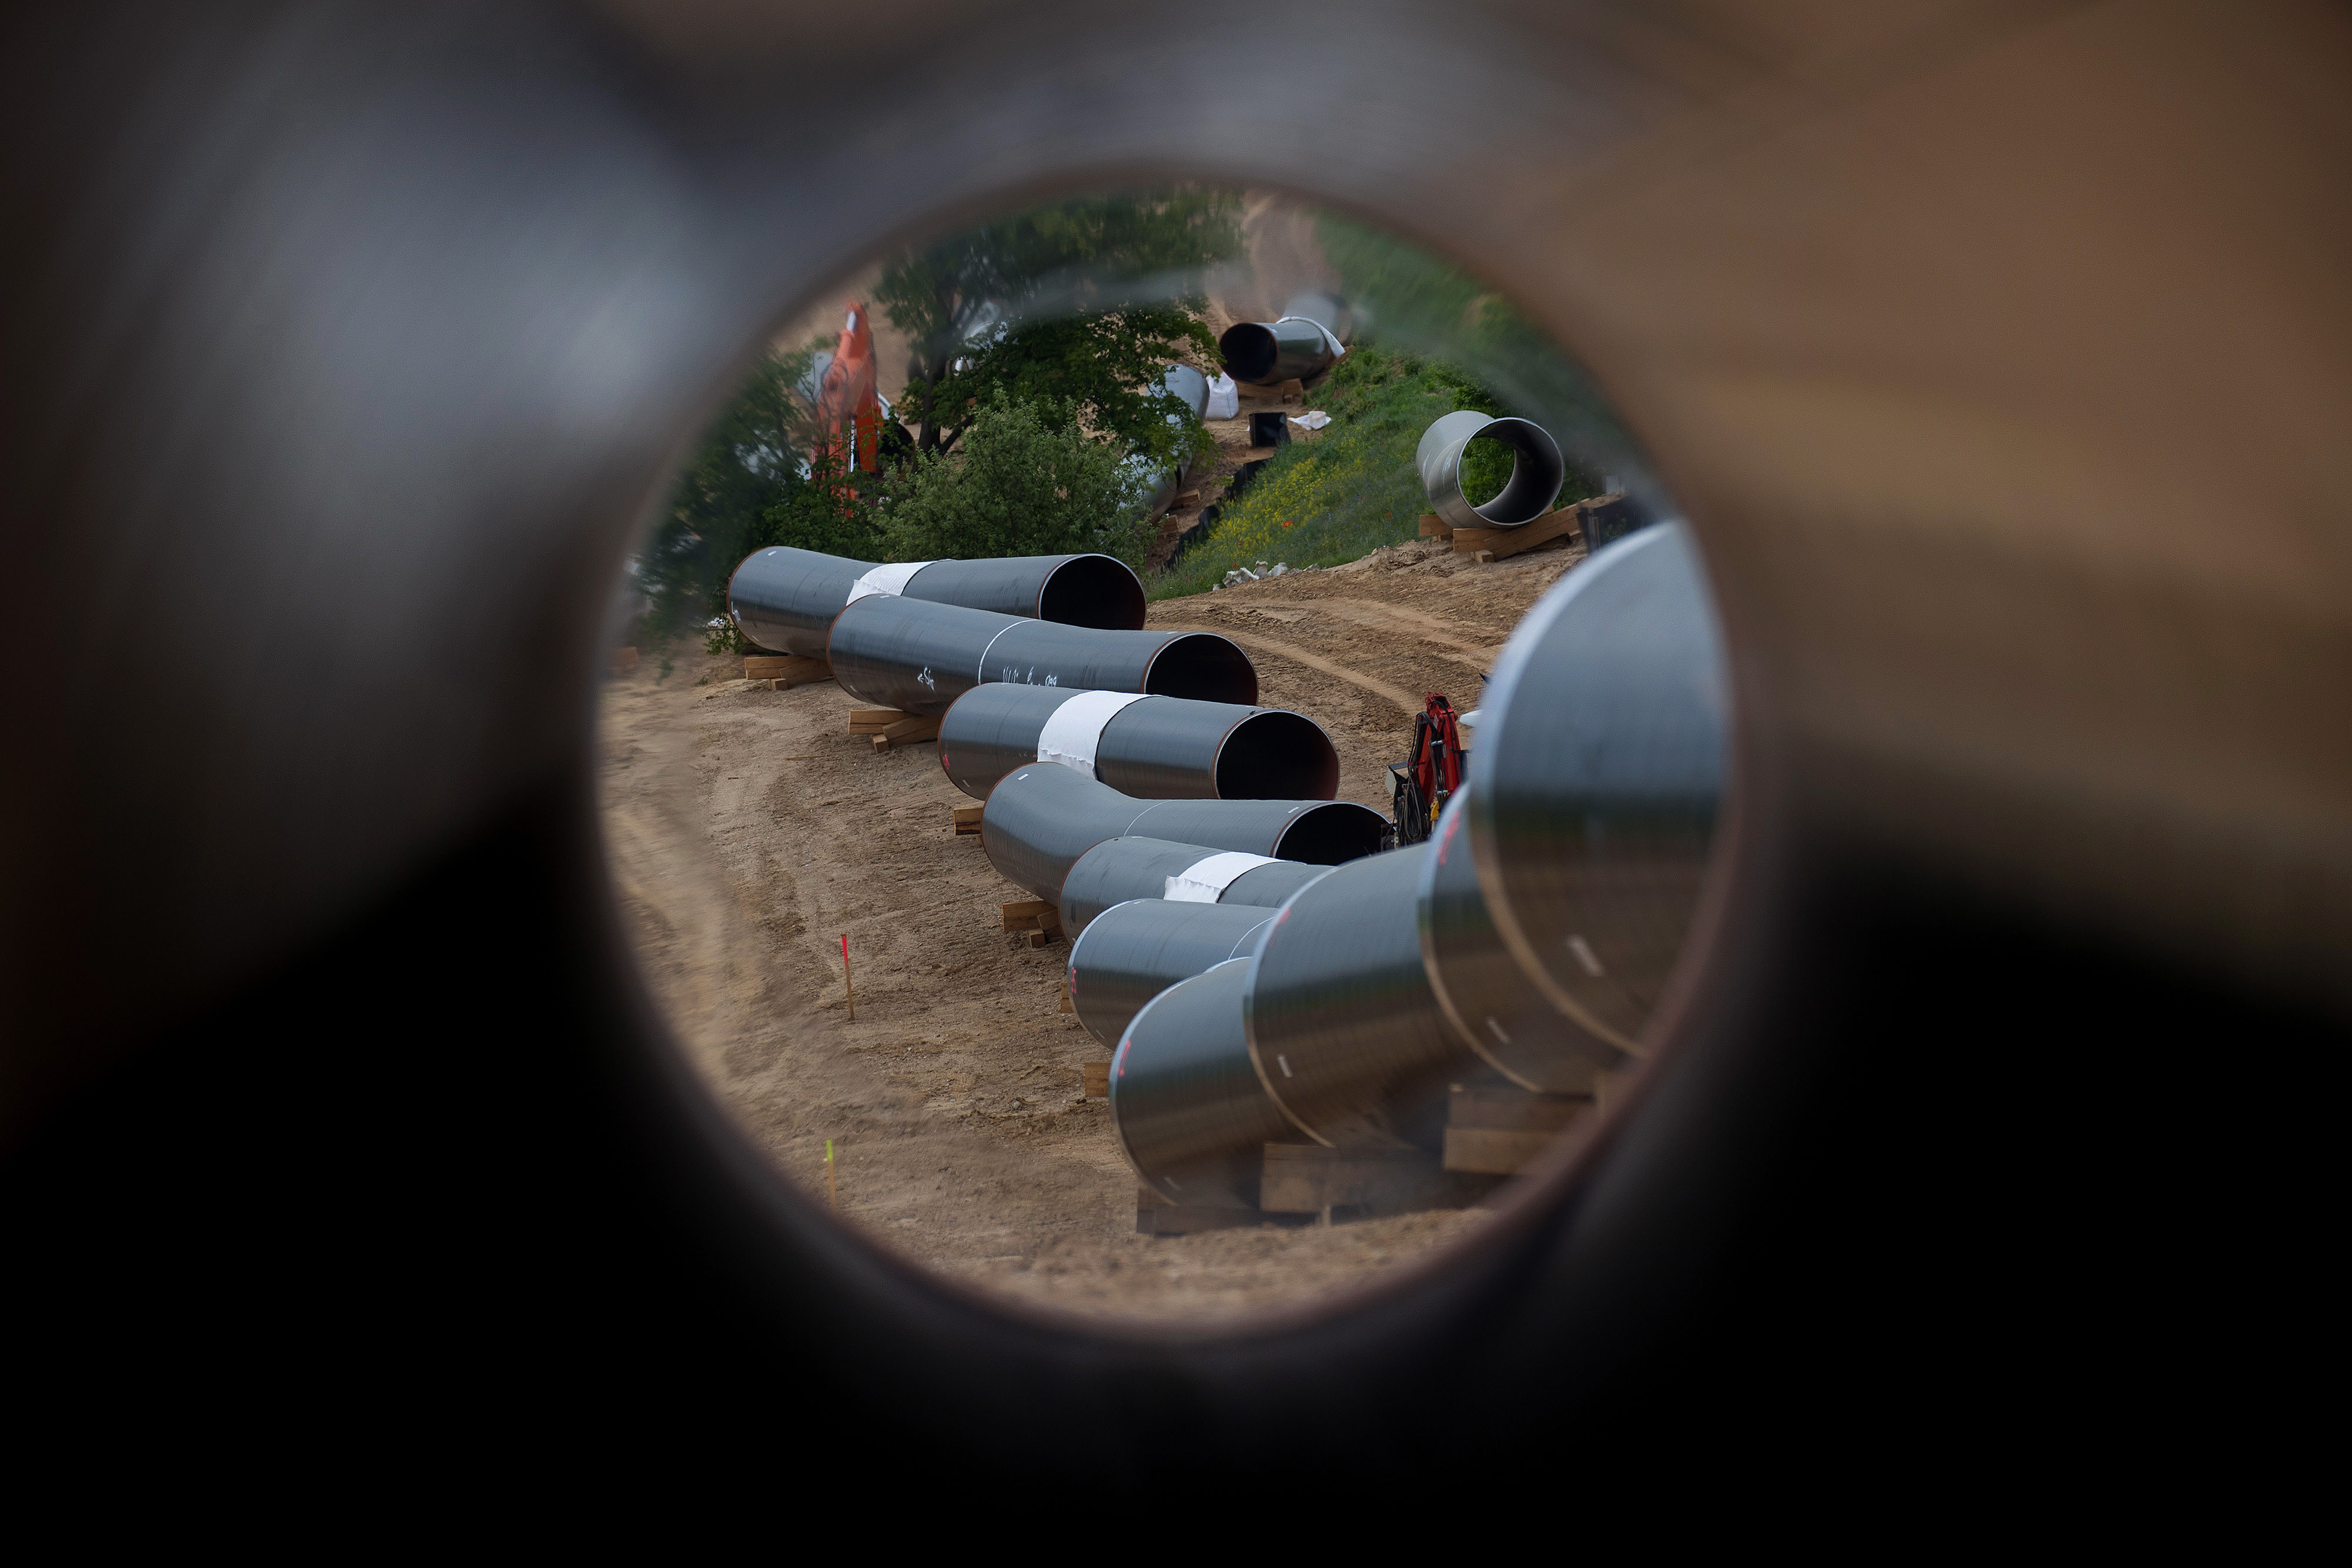 Trump Says He's Considering Sanctions to Block Nord Stream 2